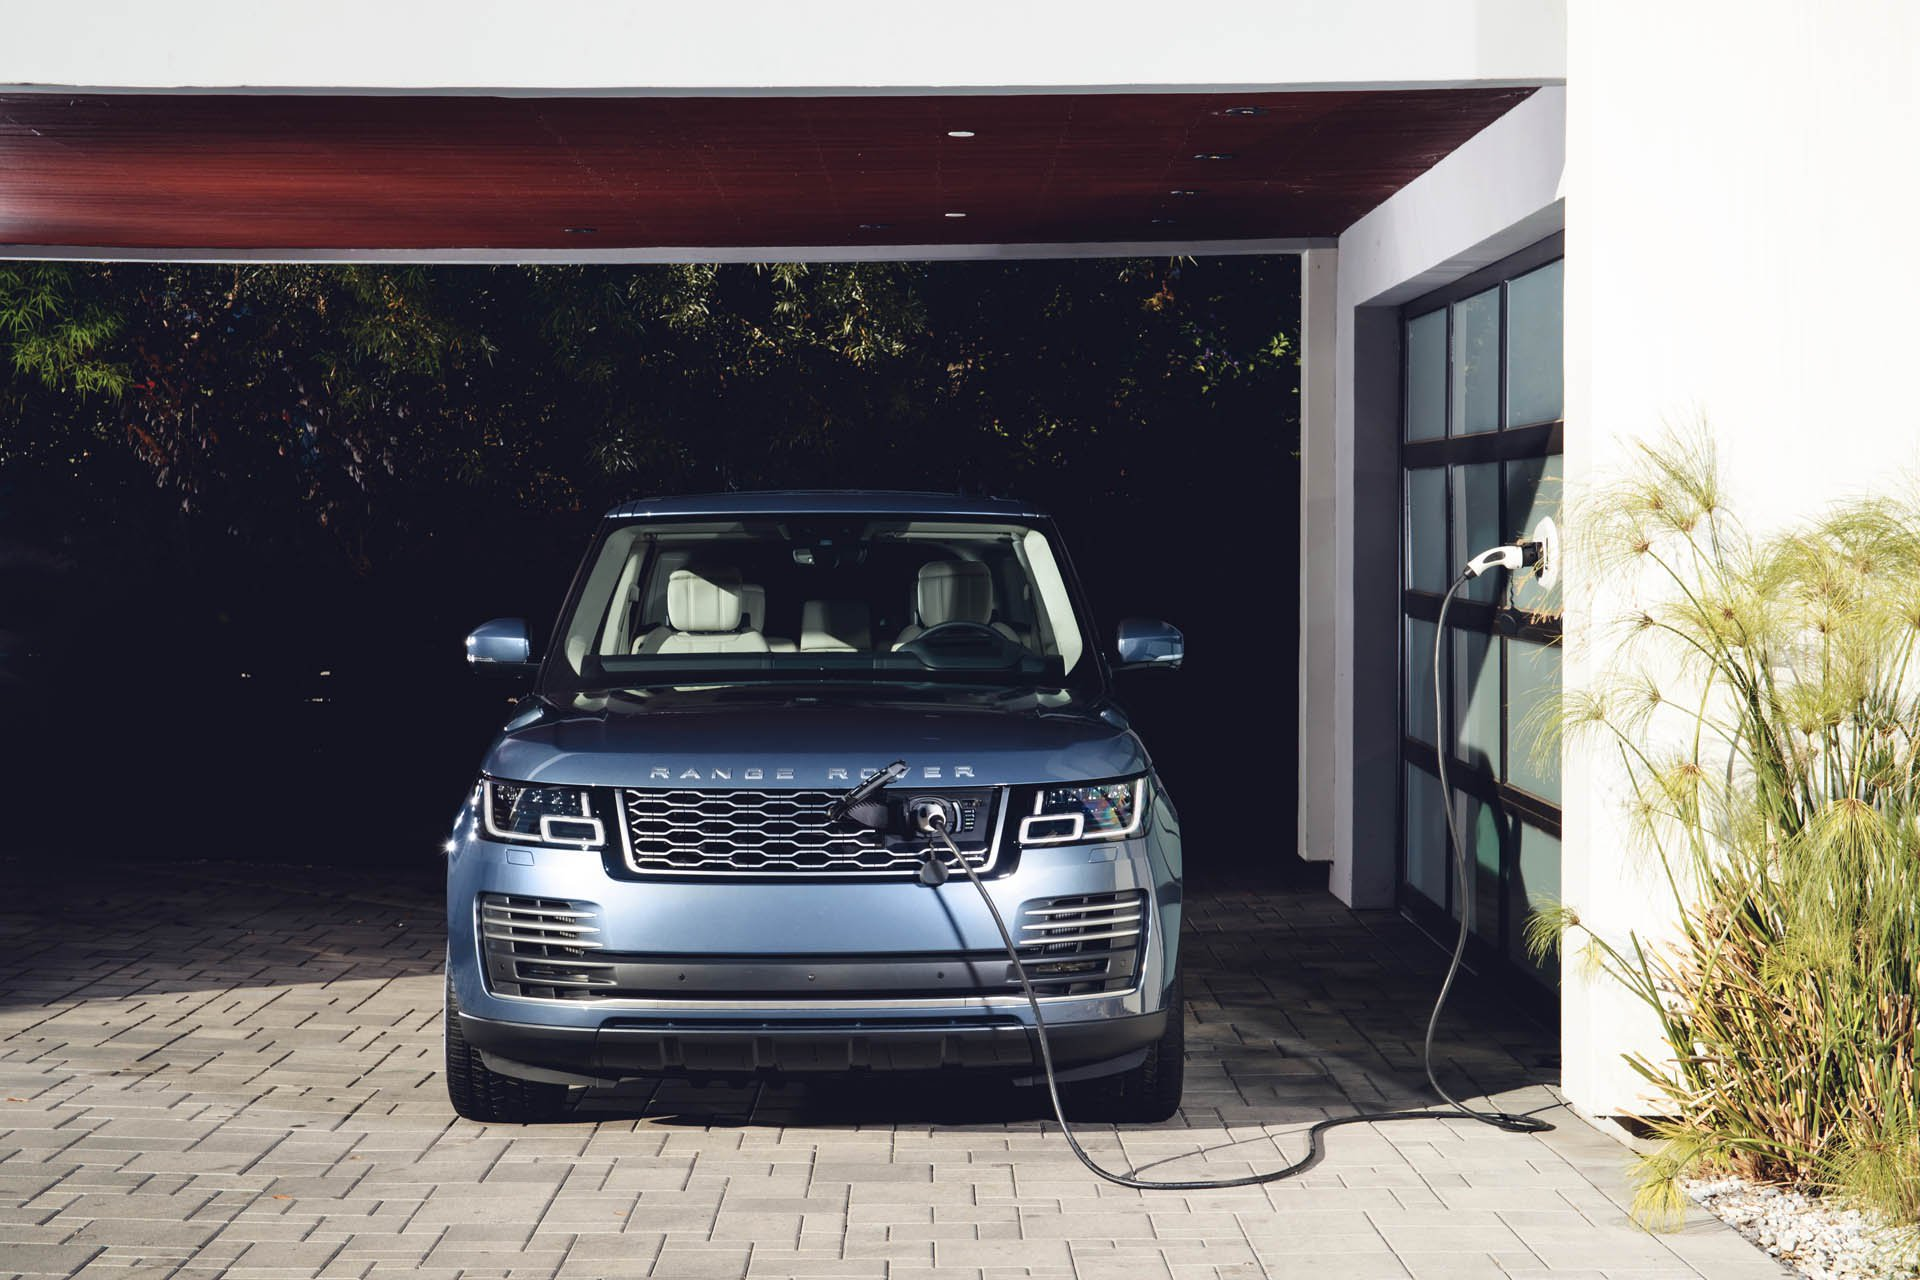 2019 range rover gets new 275 hp v6 diesel engine autoevolution. Black Bedroom Furniture Sets. Home Design Ideas